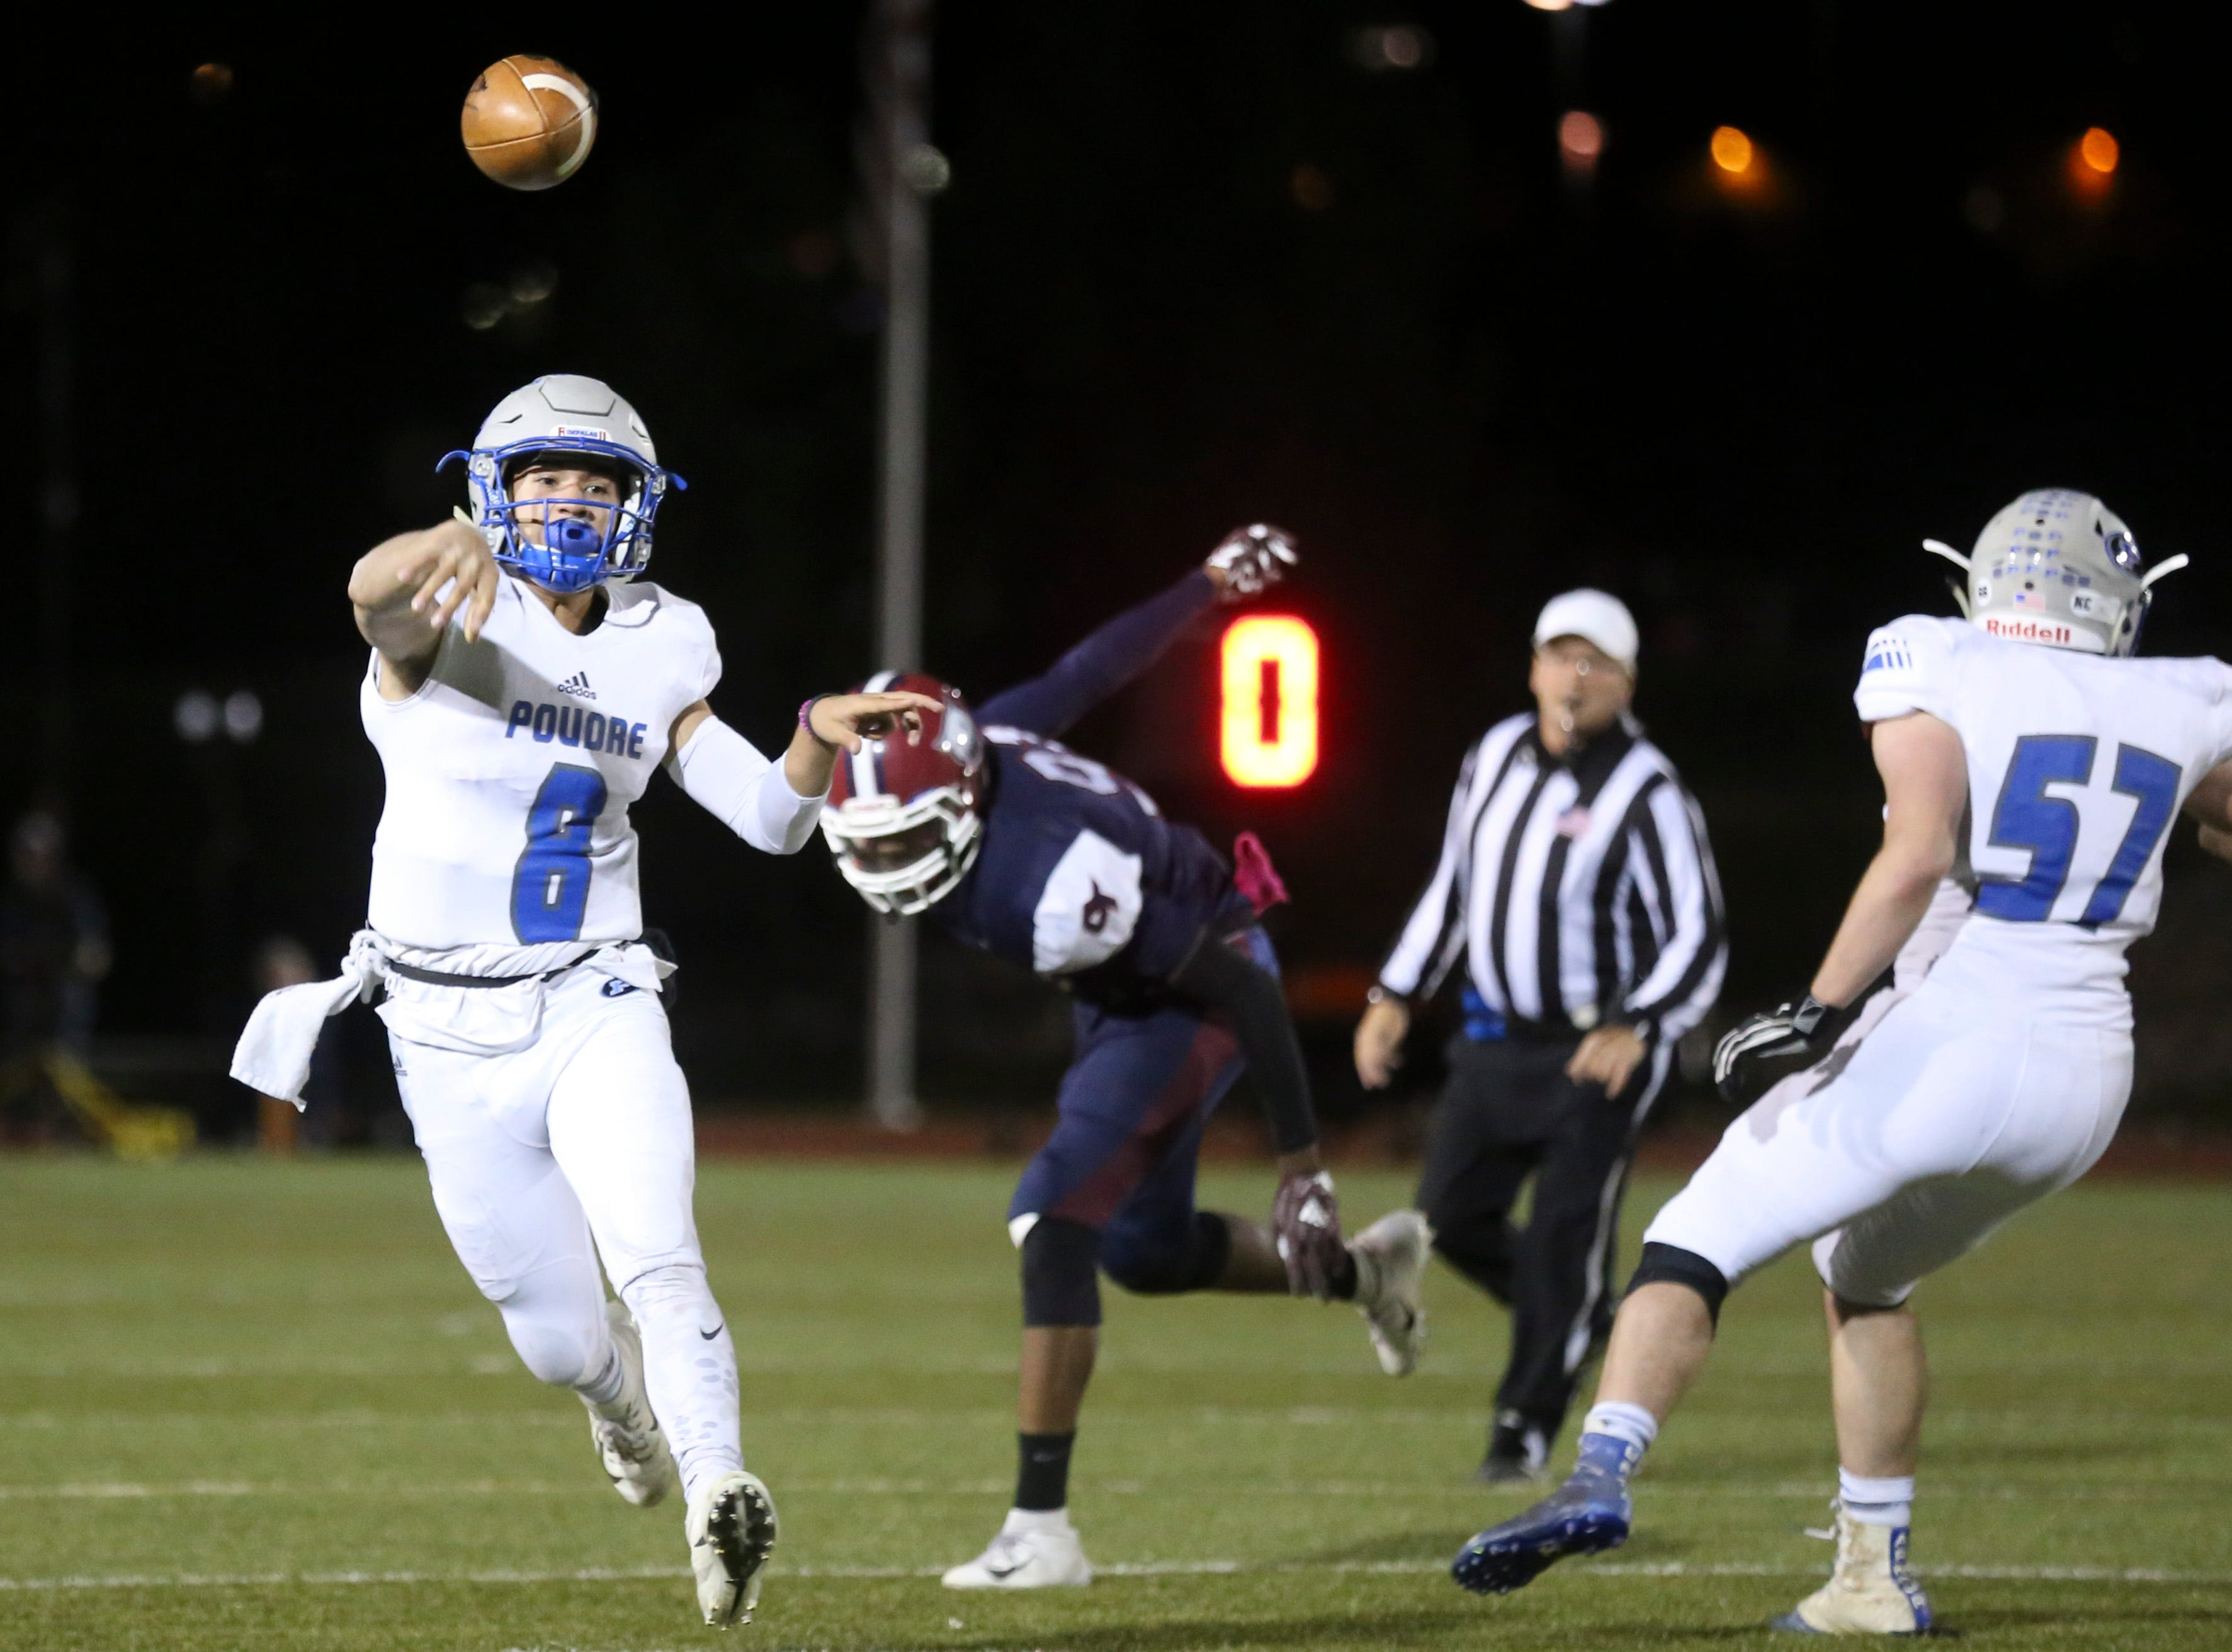 Poudre High School's Sergio Tarango passes the ball against Cherokee Trail High School during their opening round playoff game in Aurora.